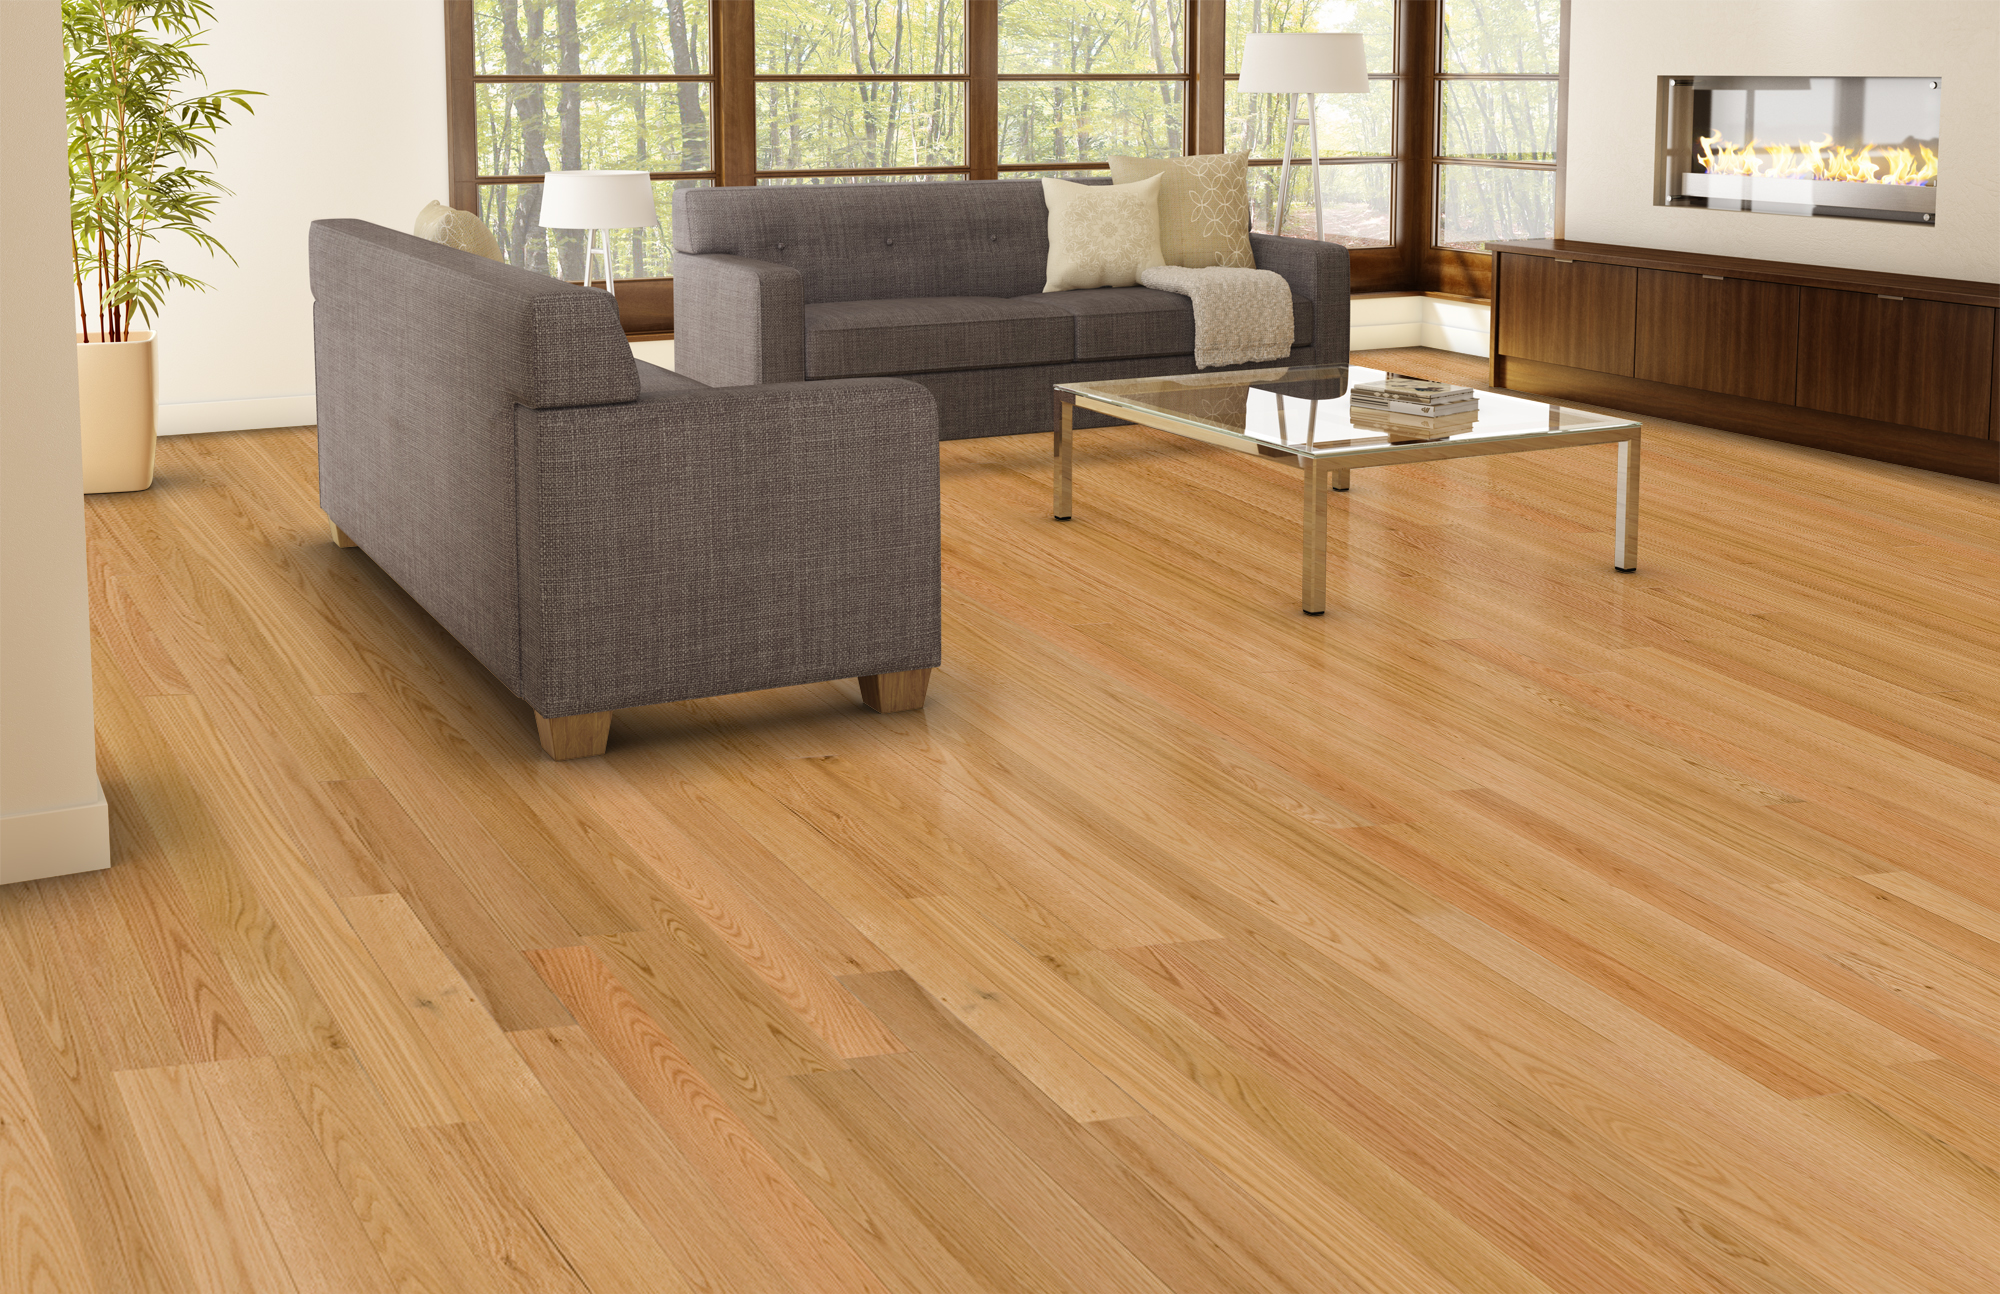 Natural ambiance red oak select better lauzon Carpet or wooden floor in living room